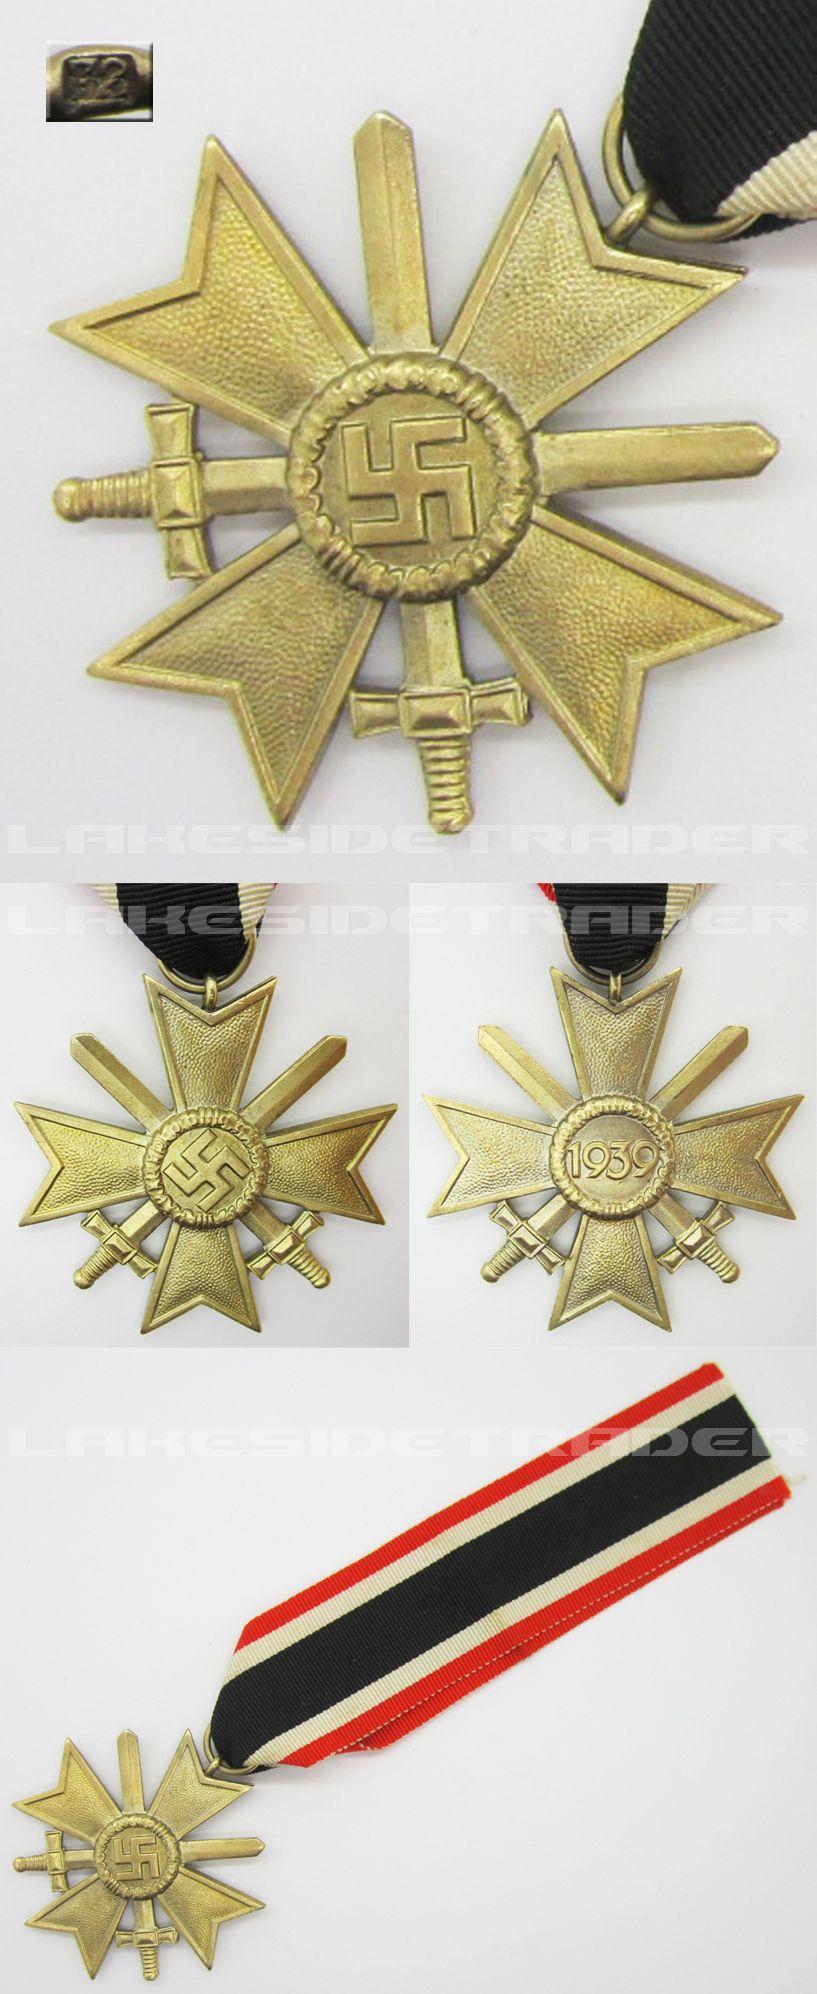 2nd Class War Merit Cross by 72